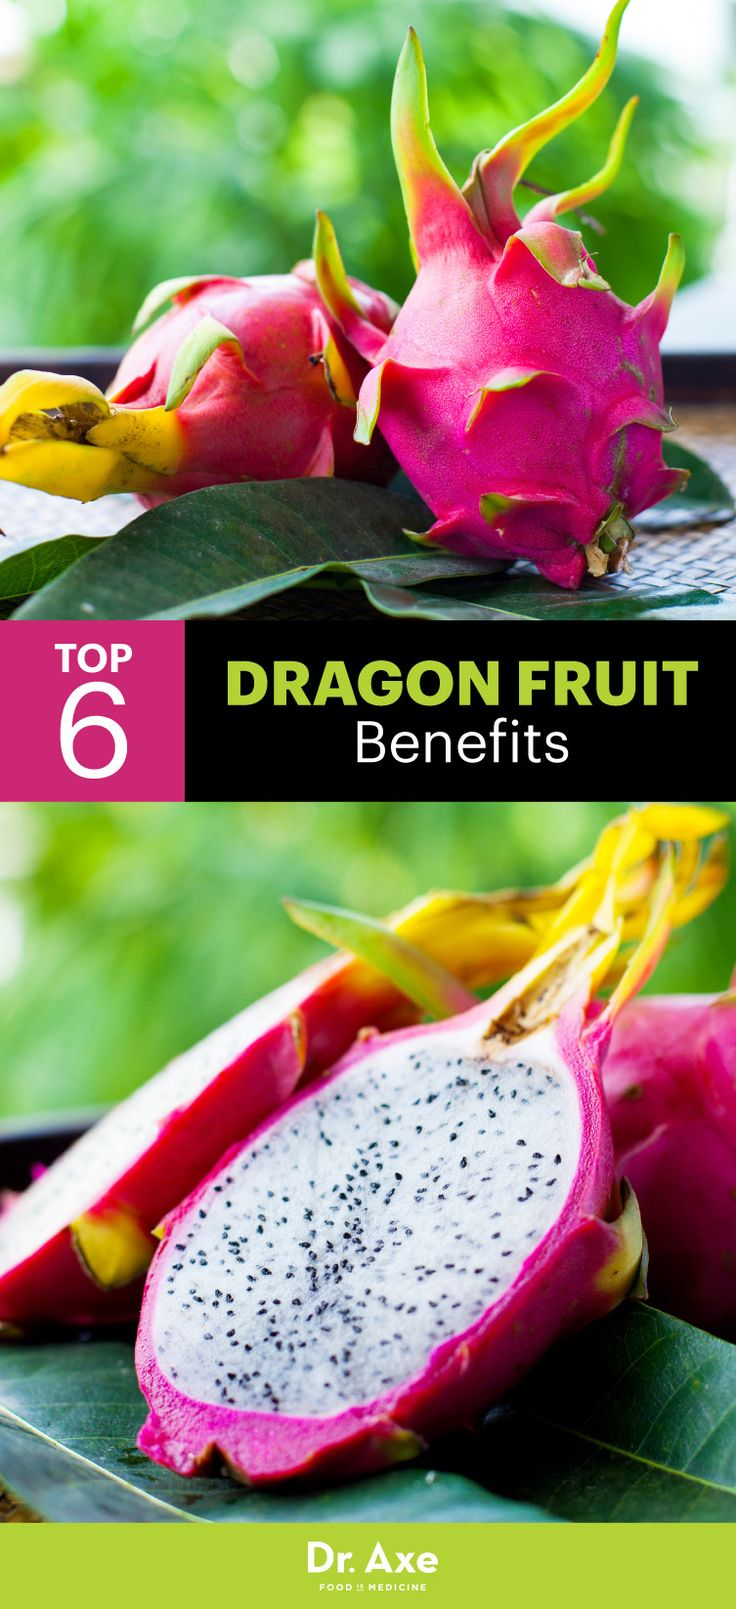 Dragon Fruit: The 'mythical' Fruit That Keeps You Looking Young